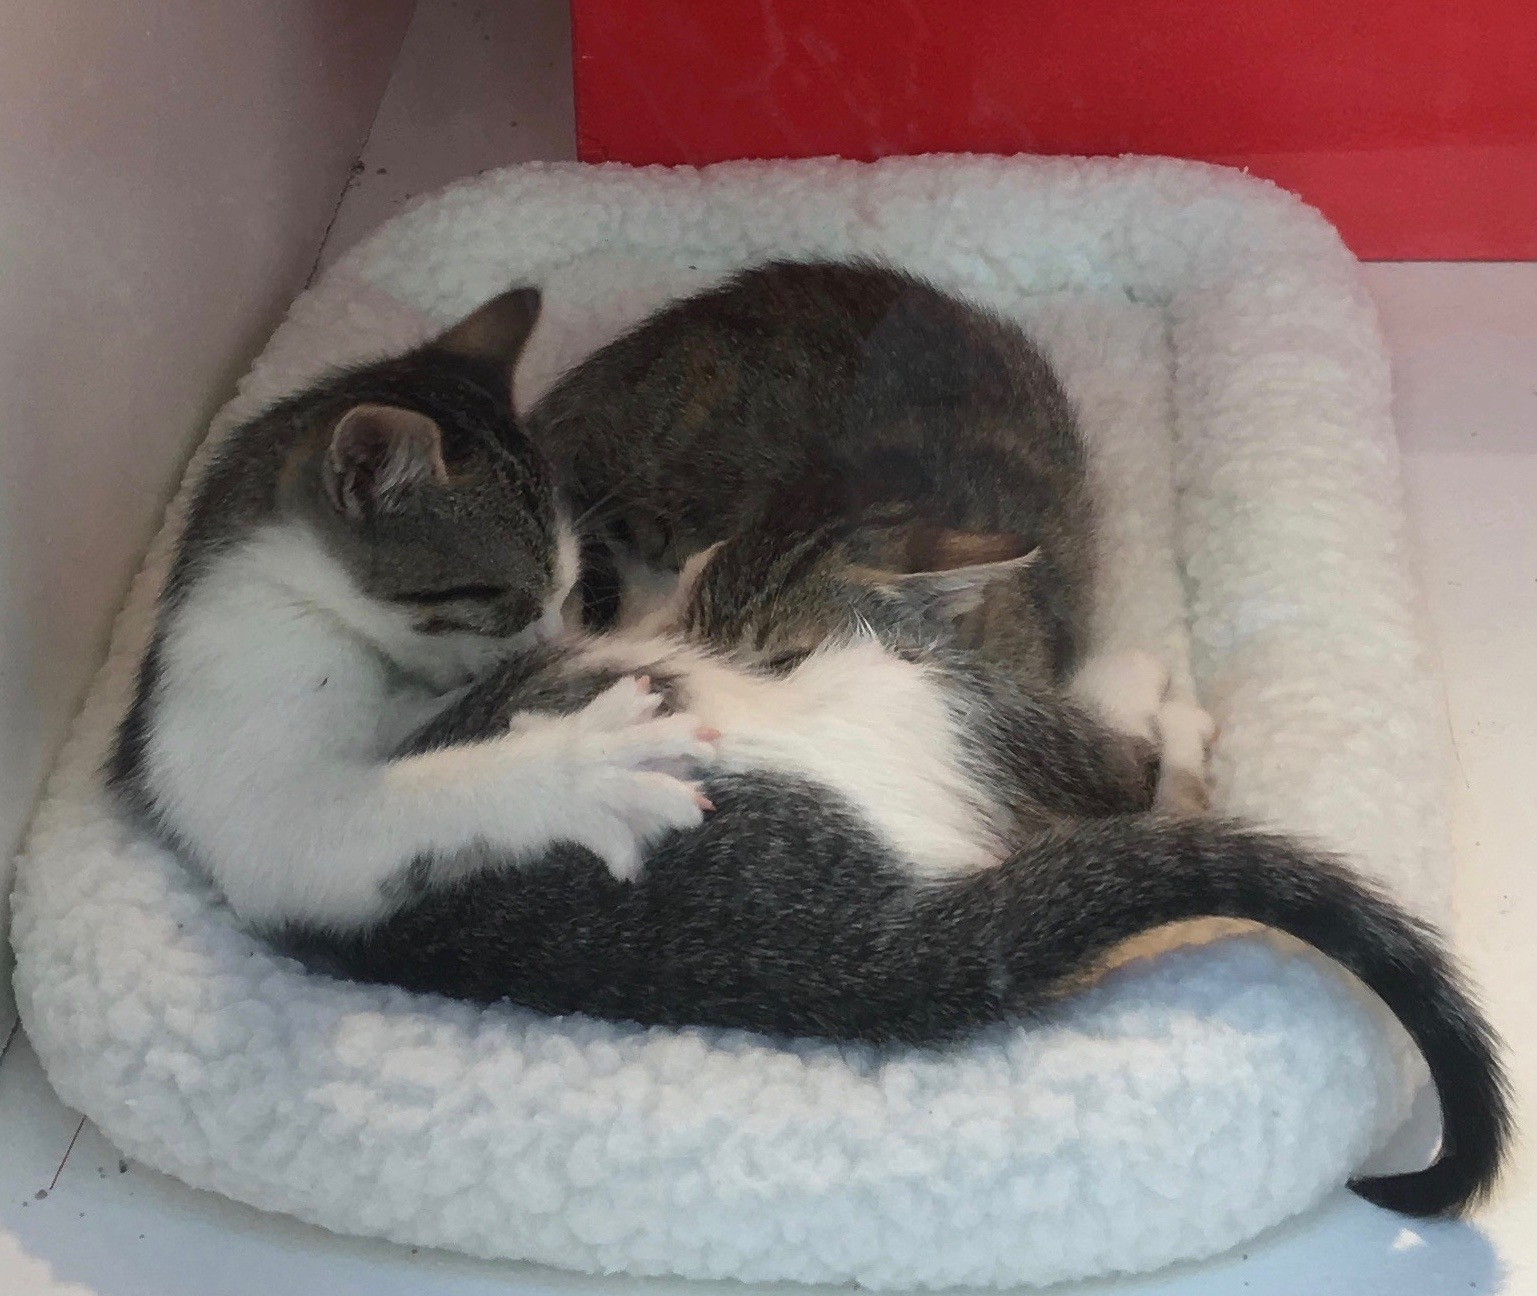 Two Kittens Sleeping On A Cat Bed